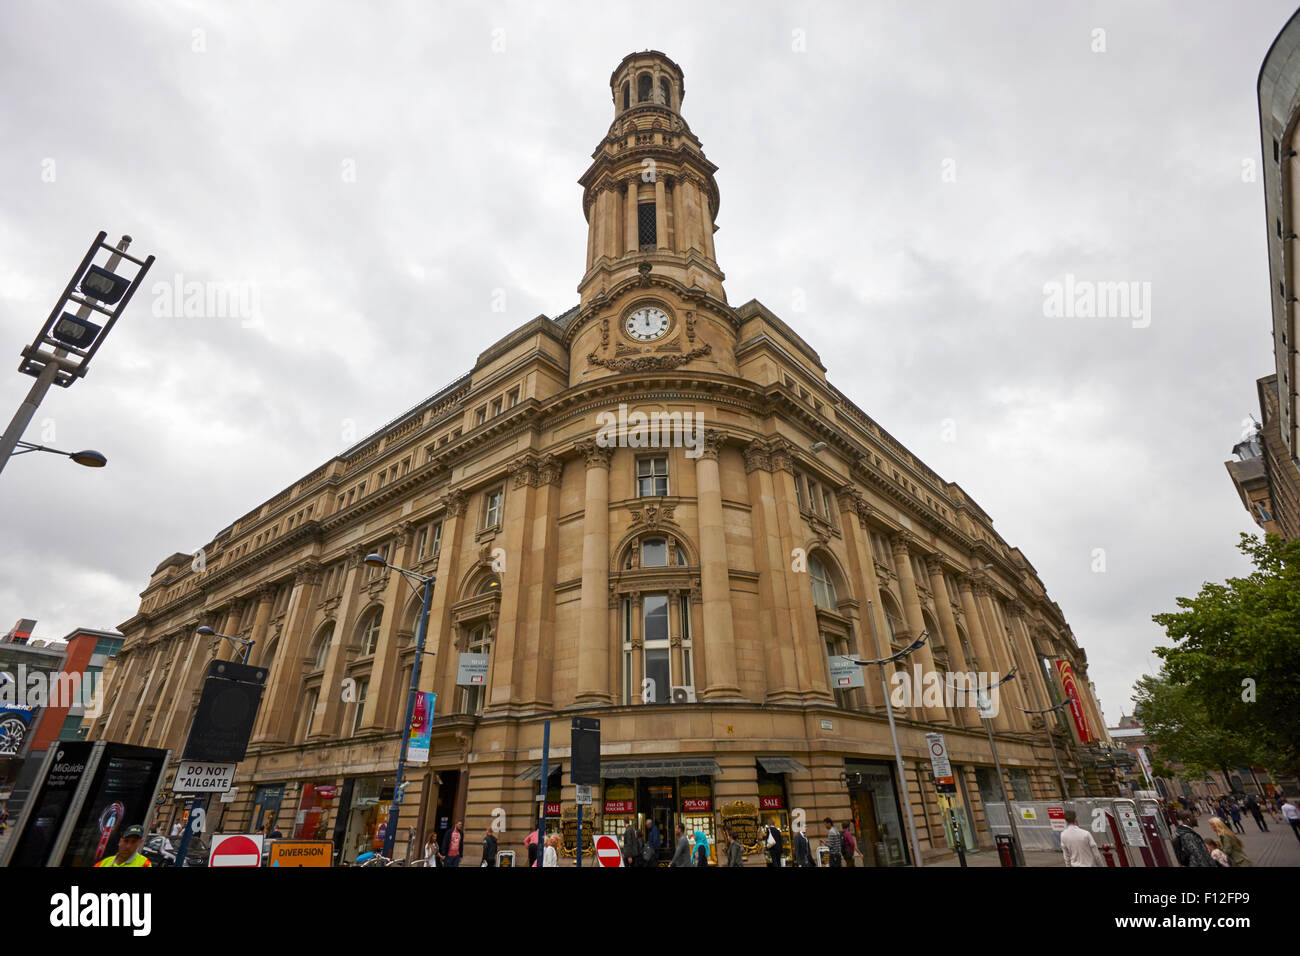 royal exchange building Manchester England UK - Stock Image